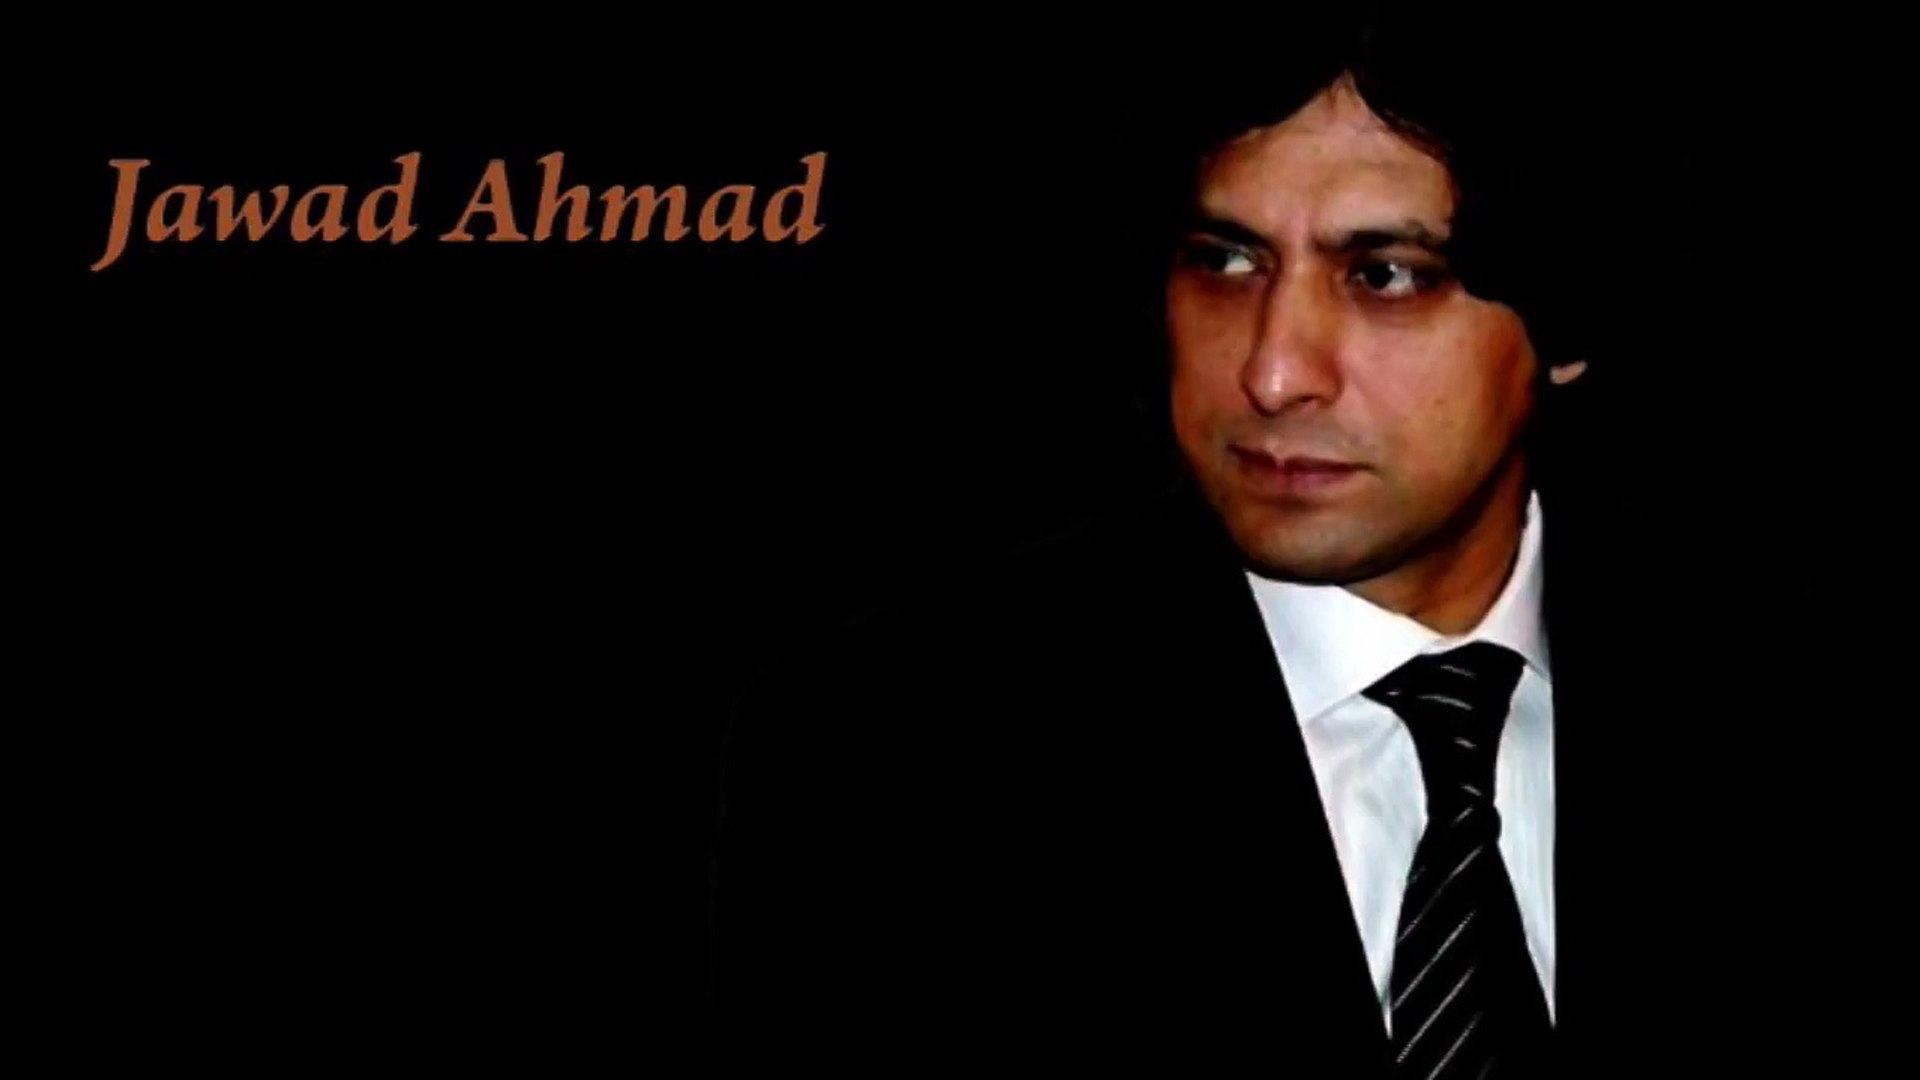 Jawad Ahmad Age, Height, Weight, Wife, Affairs, Net Worth